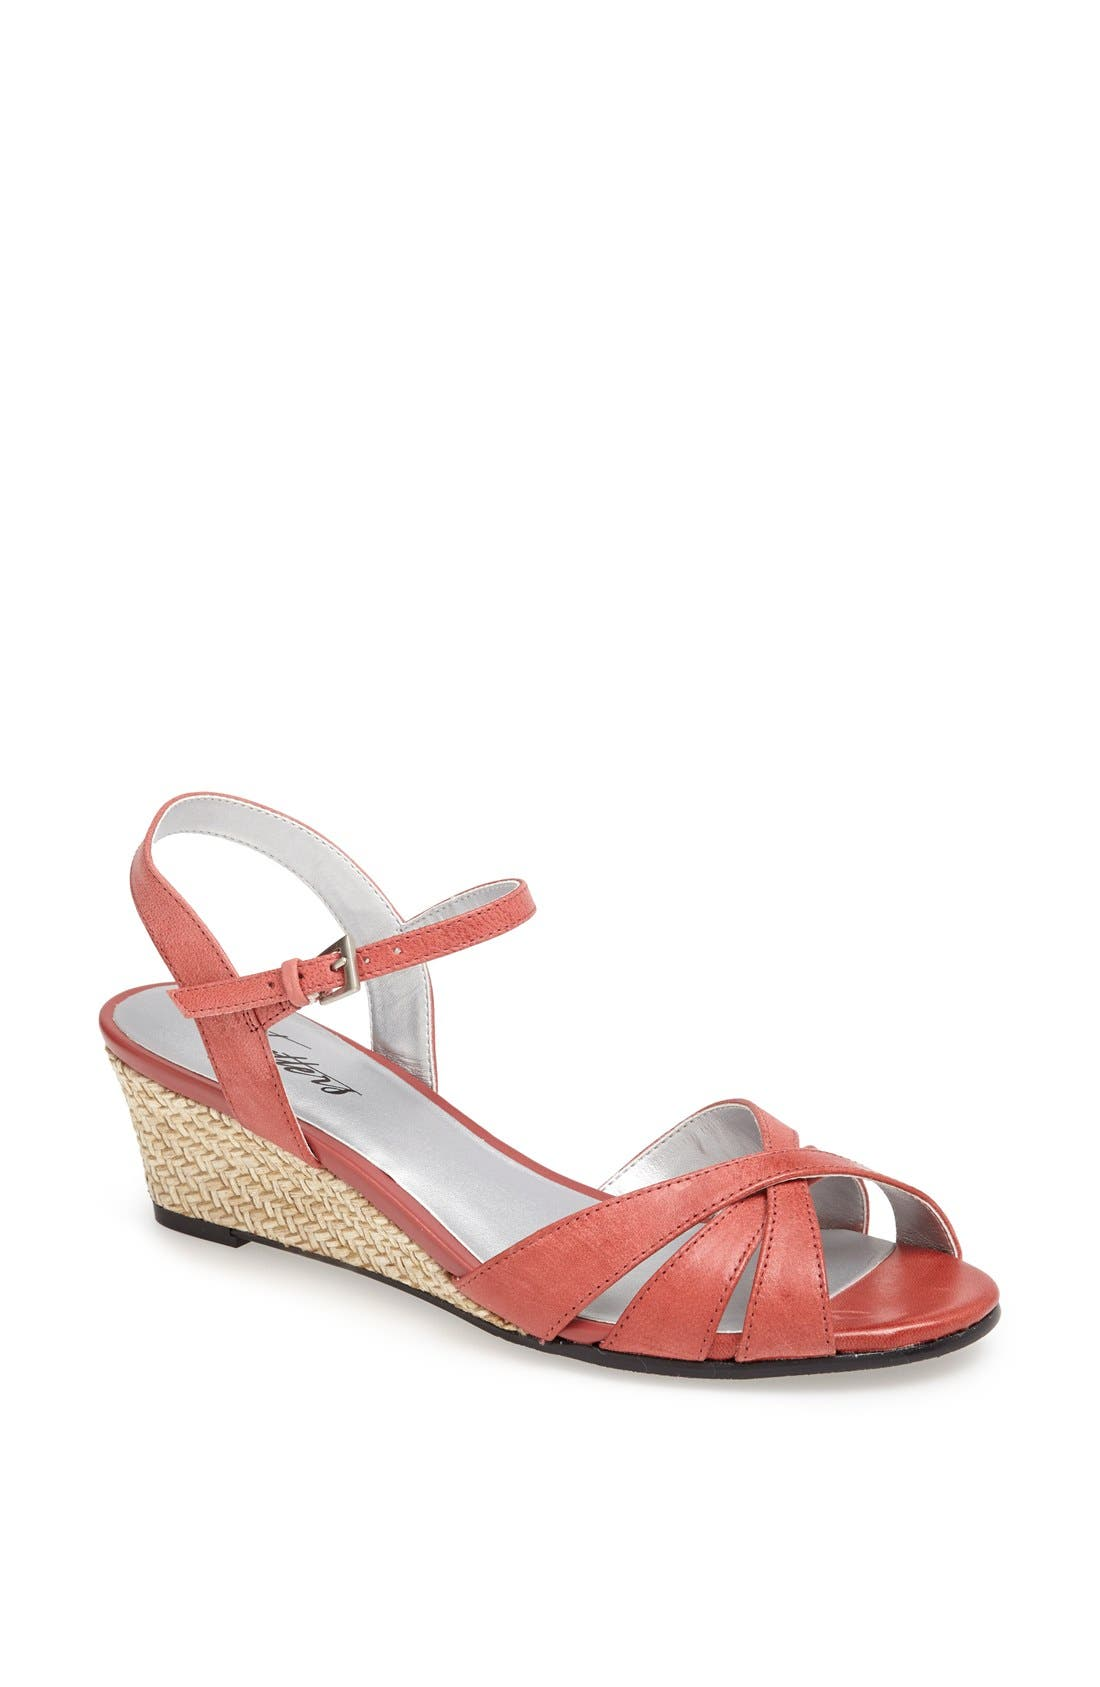 'Mickey' Wedge Sandal,                             Main thumbnail 10, color,